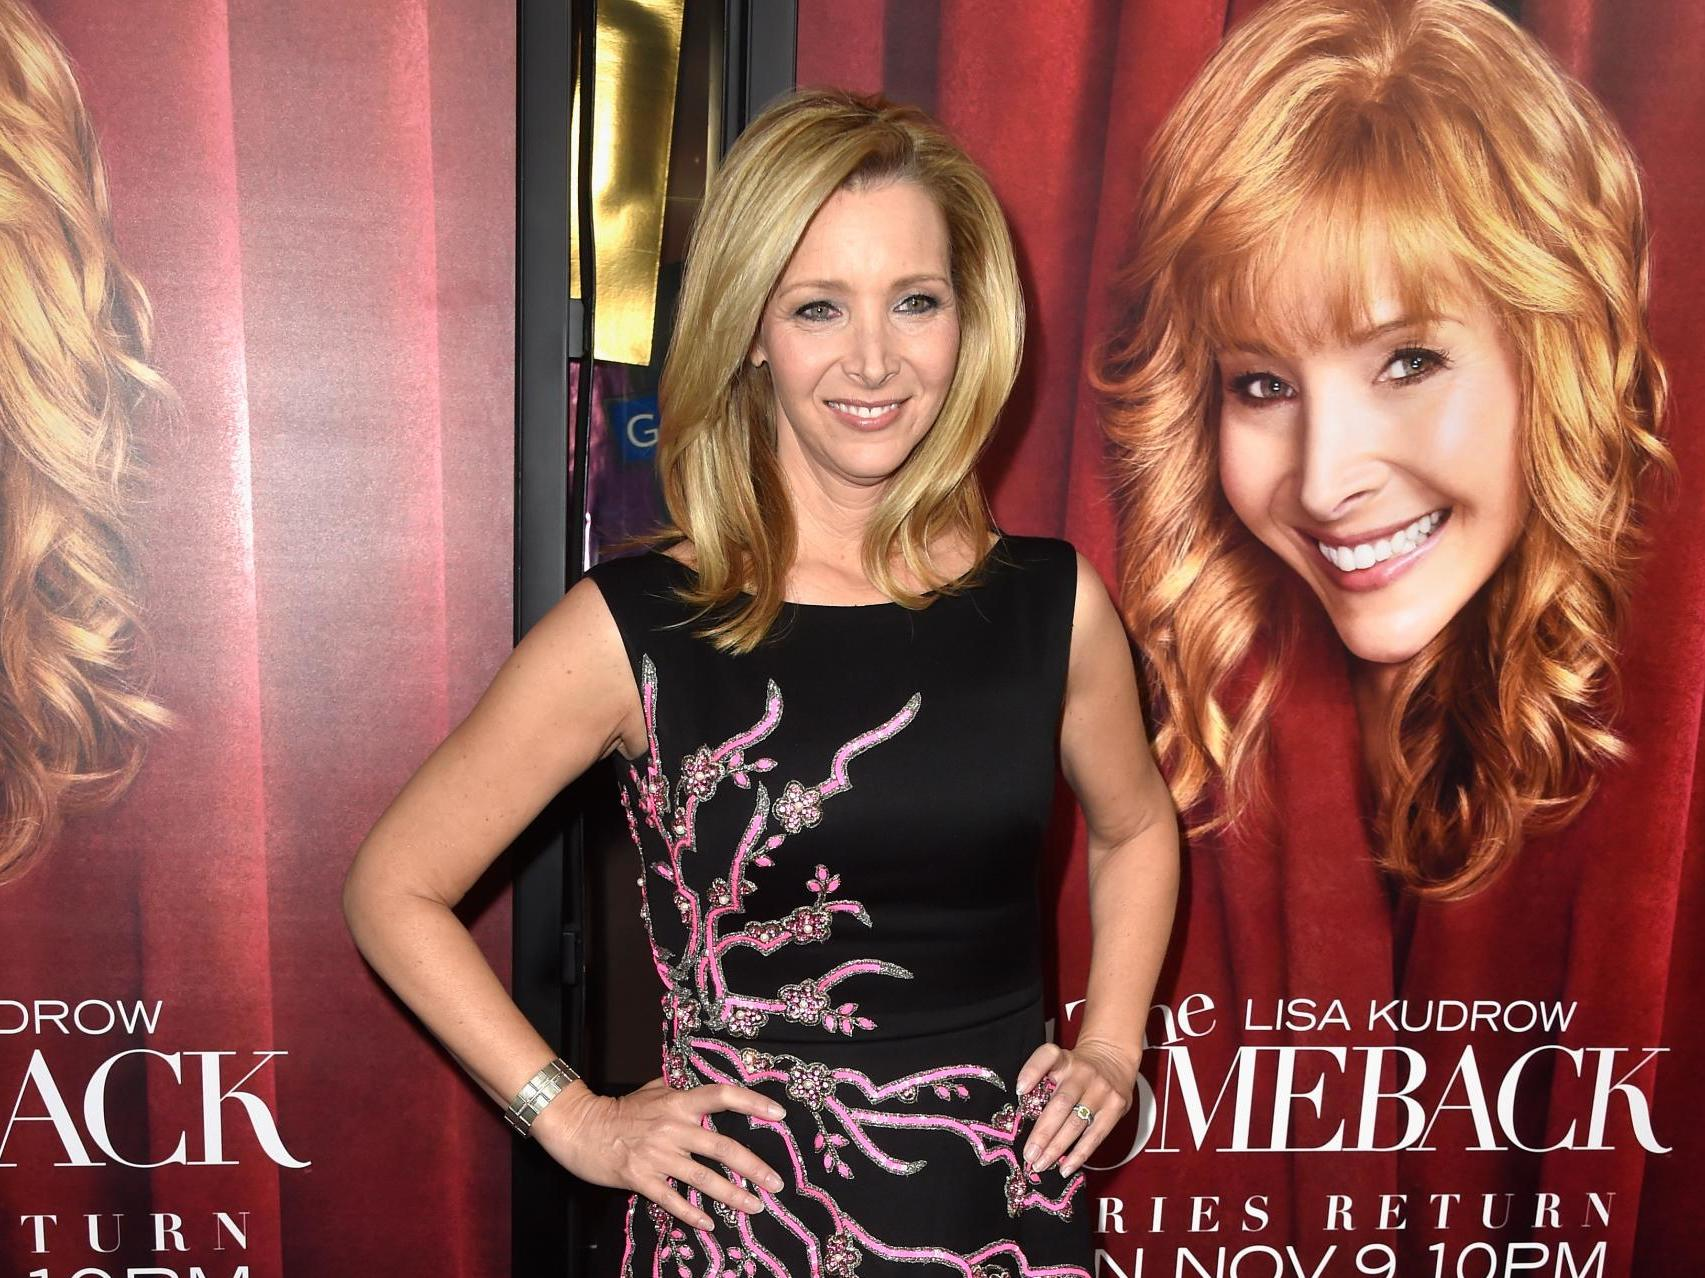 How Lisa Kudrow's The Comeback took on Hollywood misogyny years before #MeToo